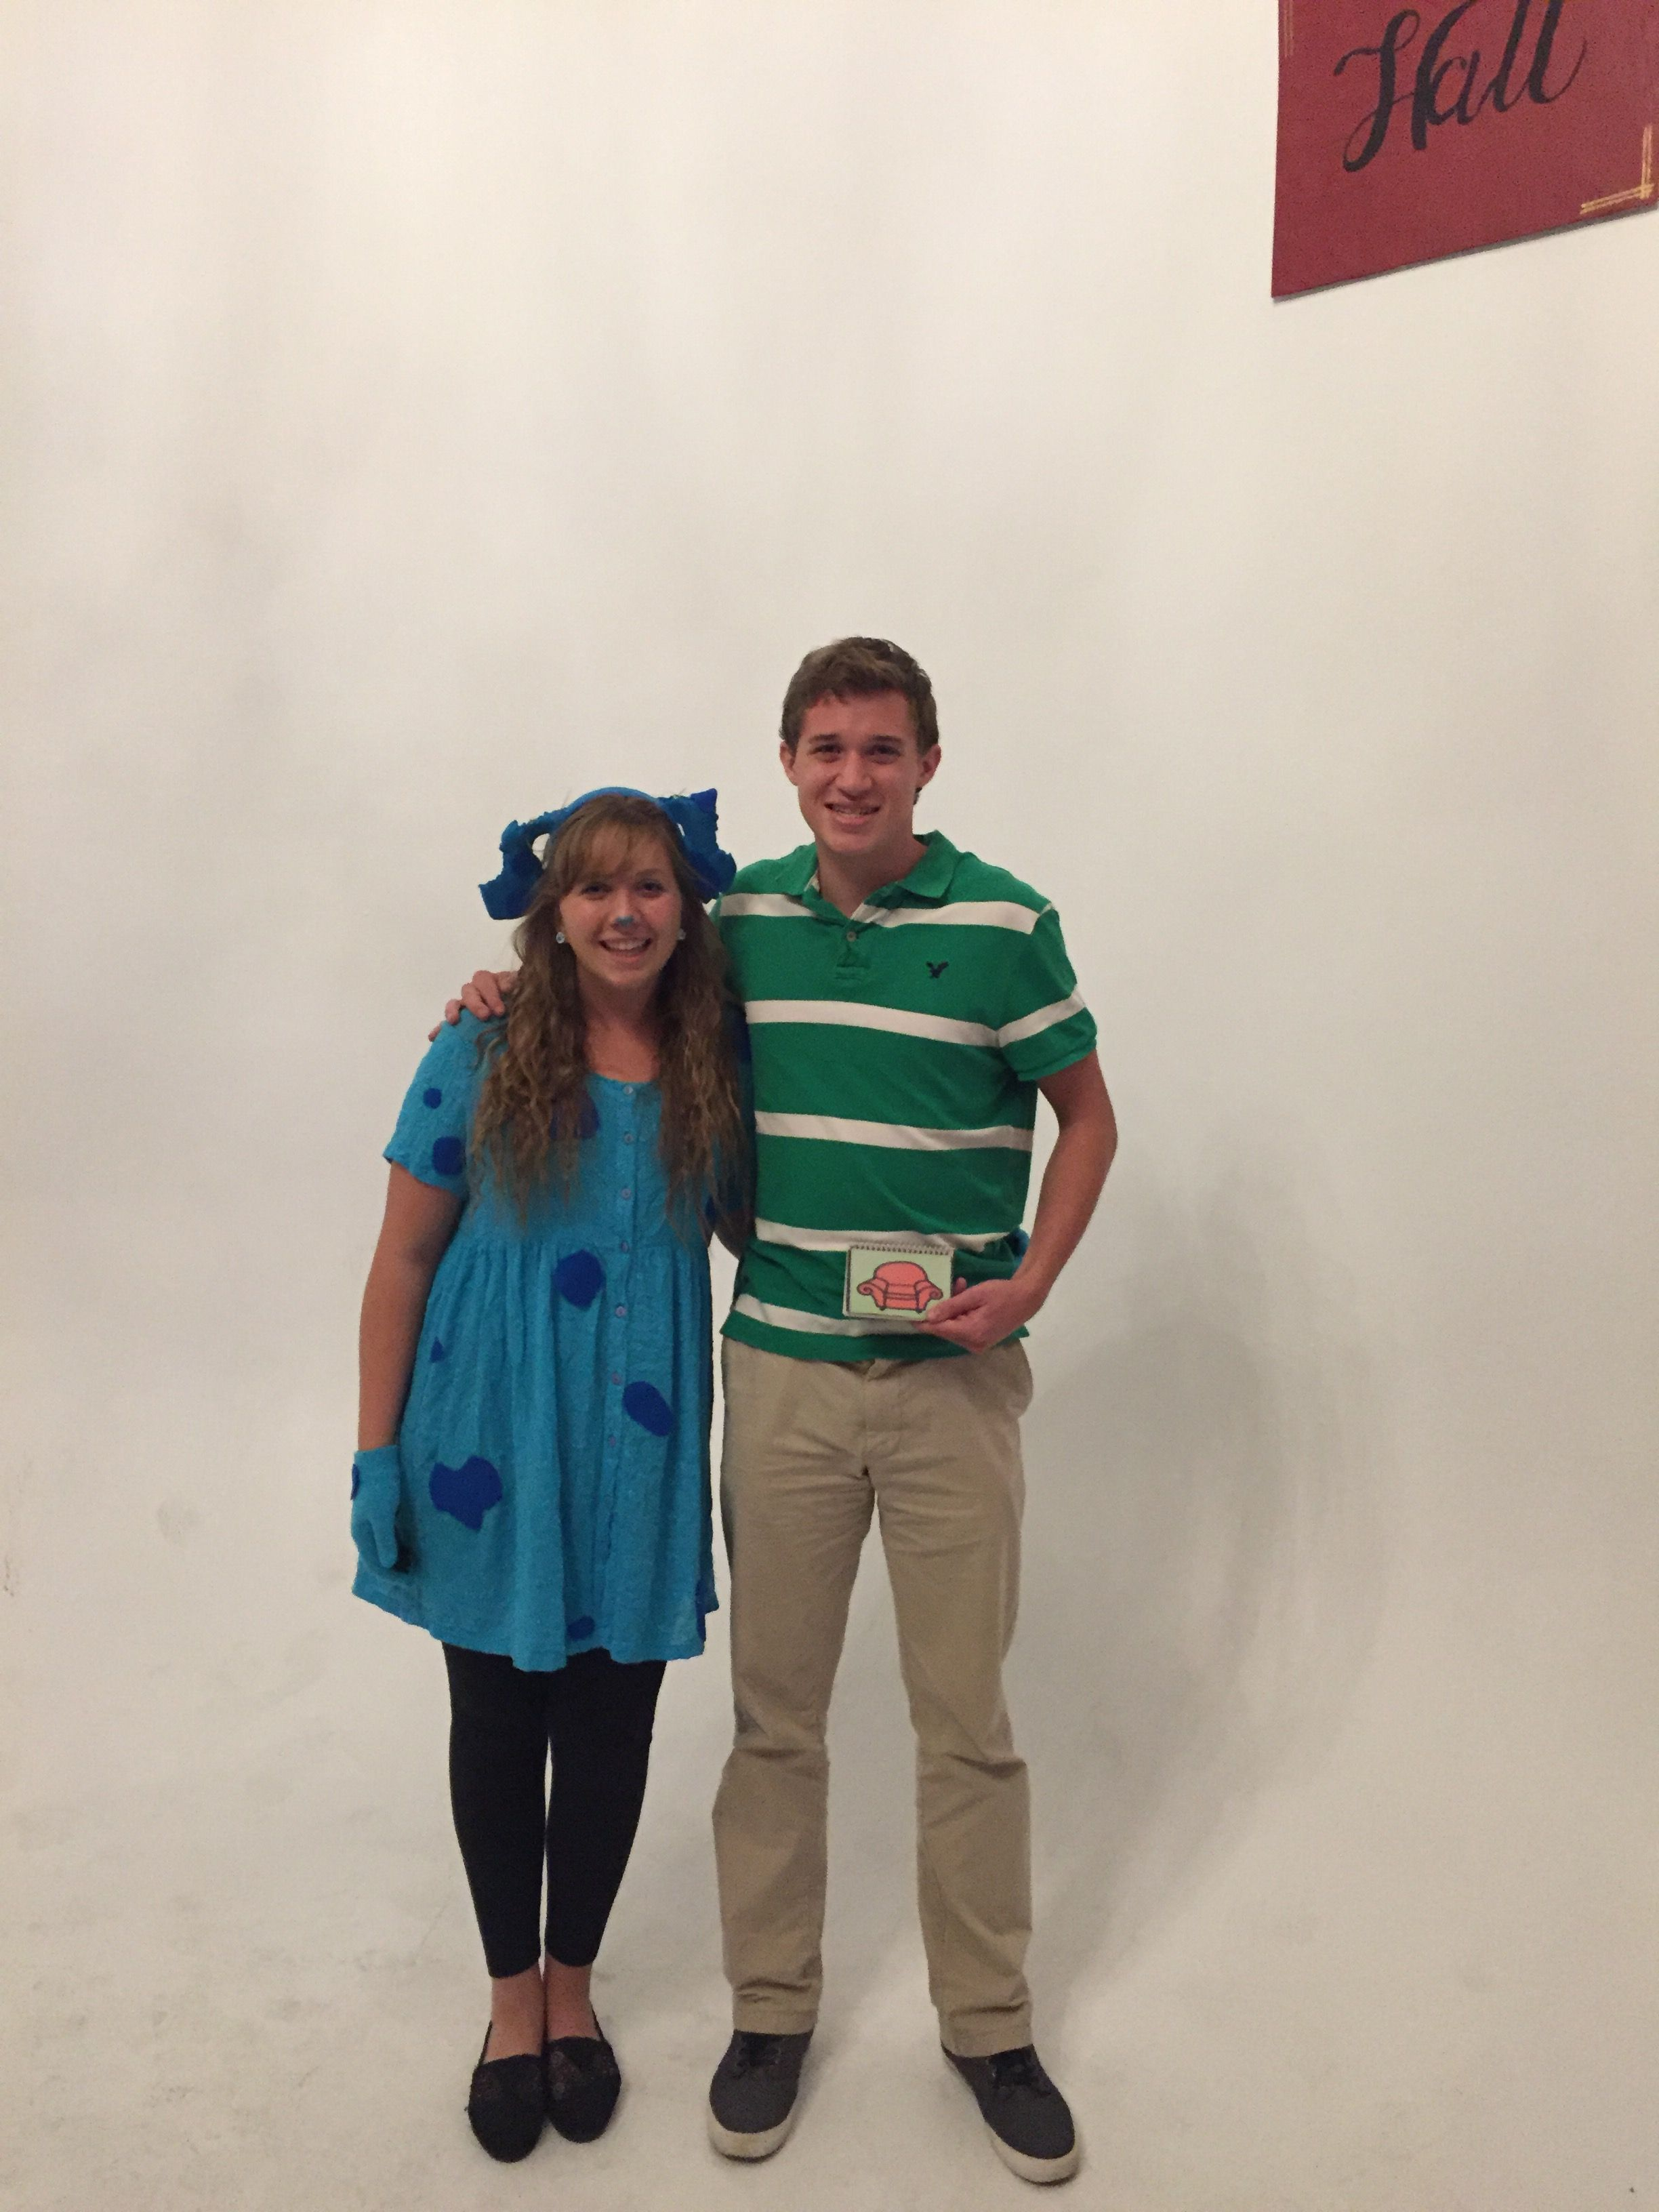 In Search Of A Clue Blue S Clues Bluesclues Mystery